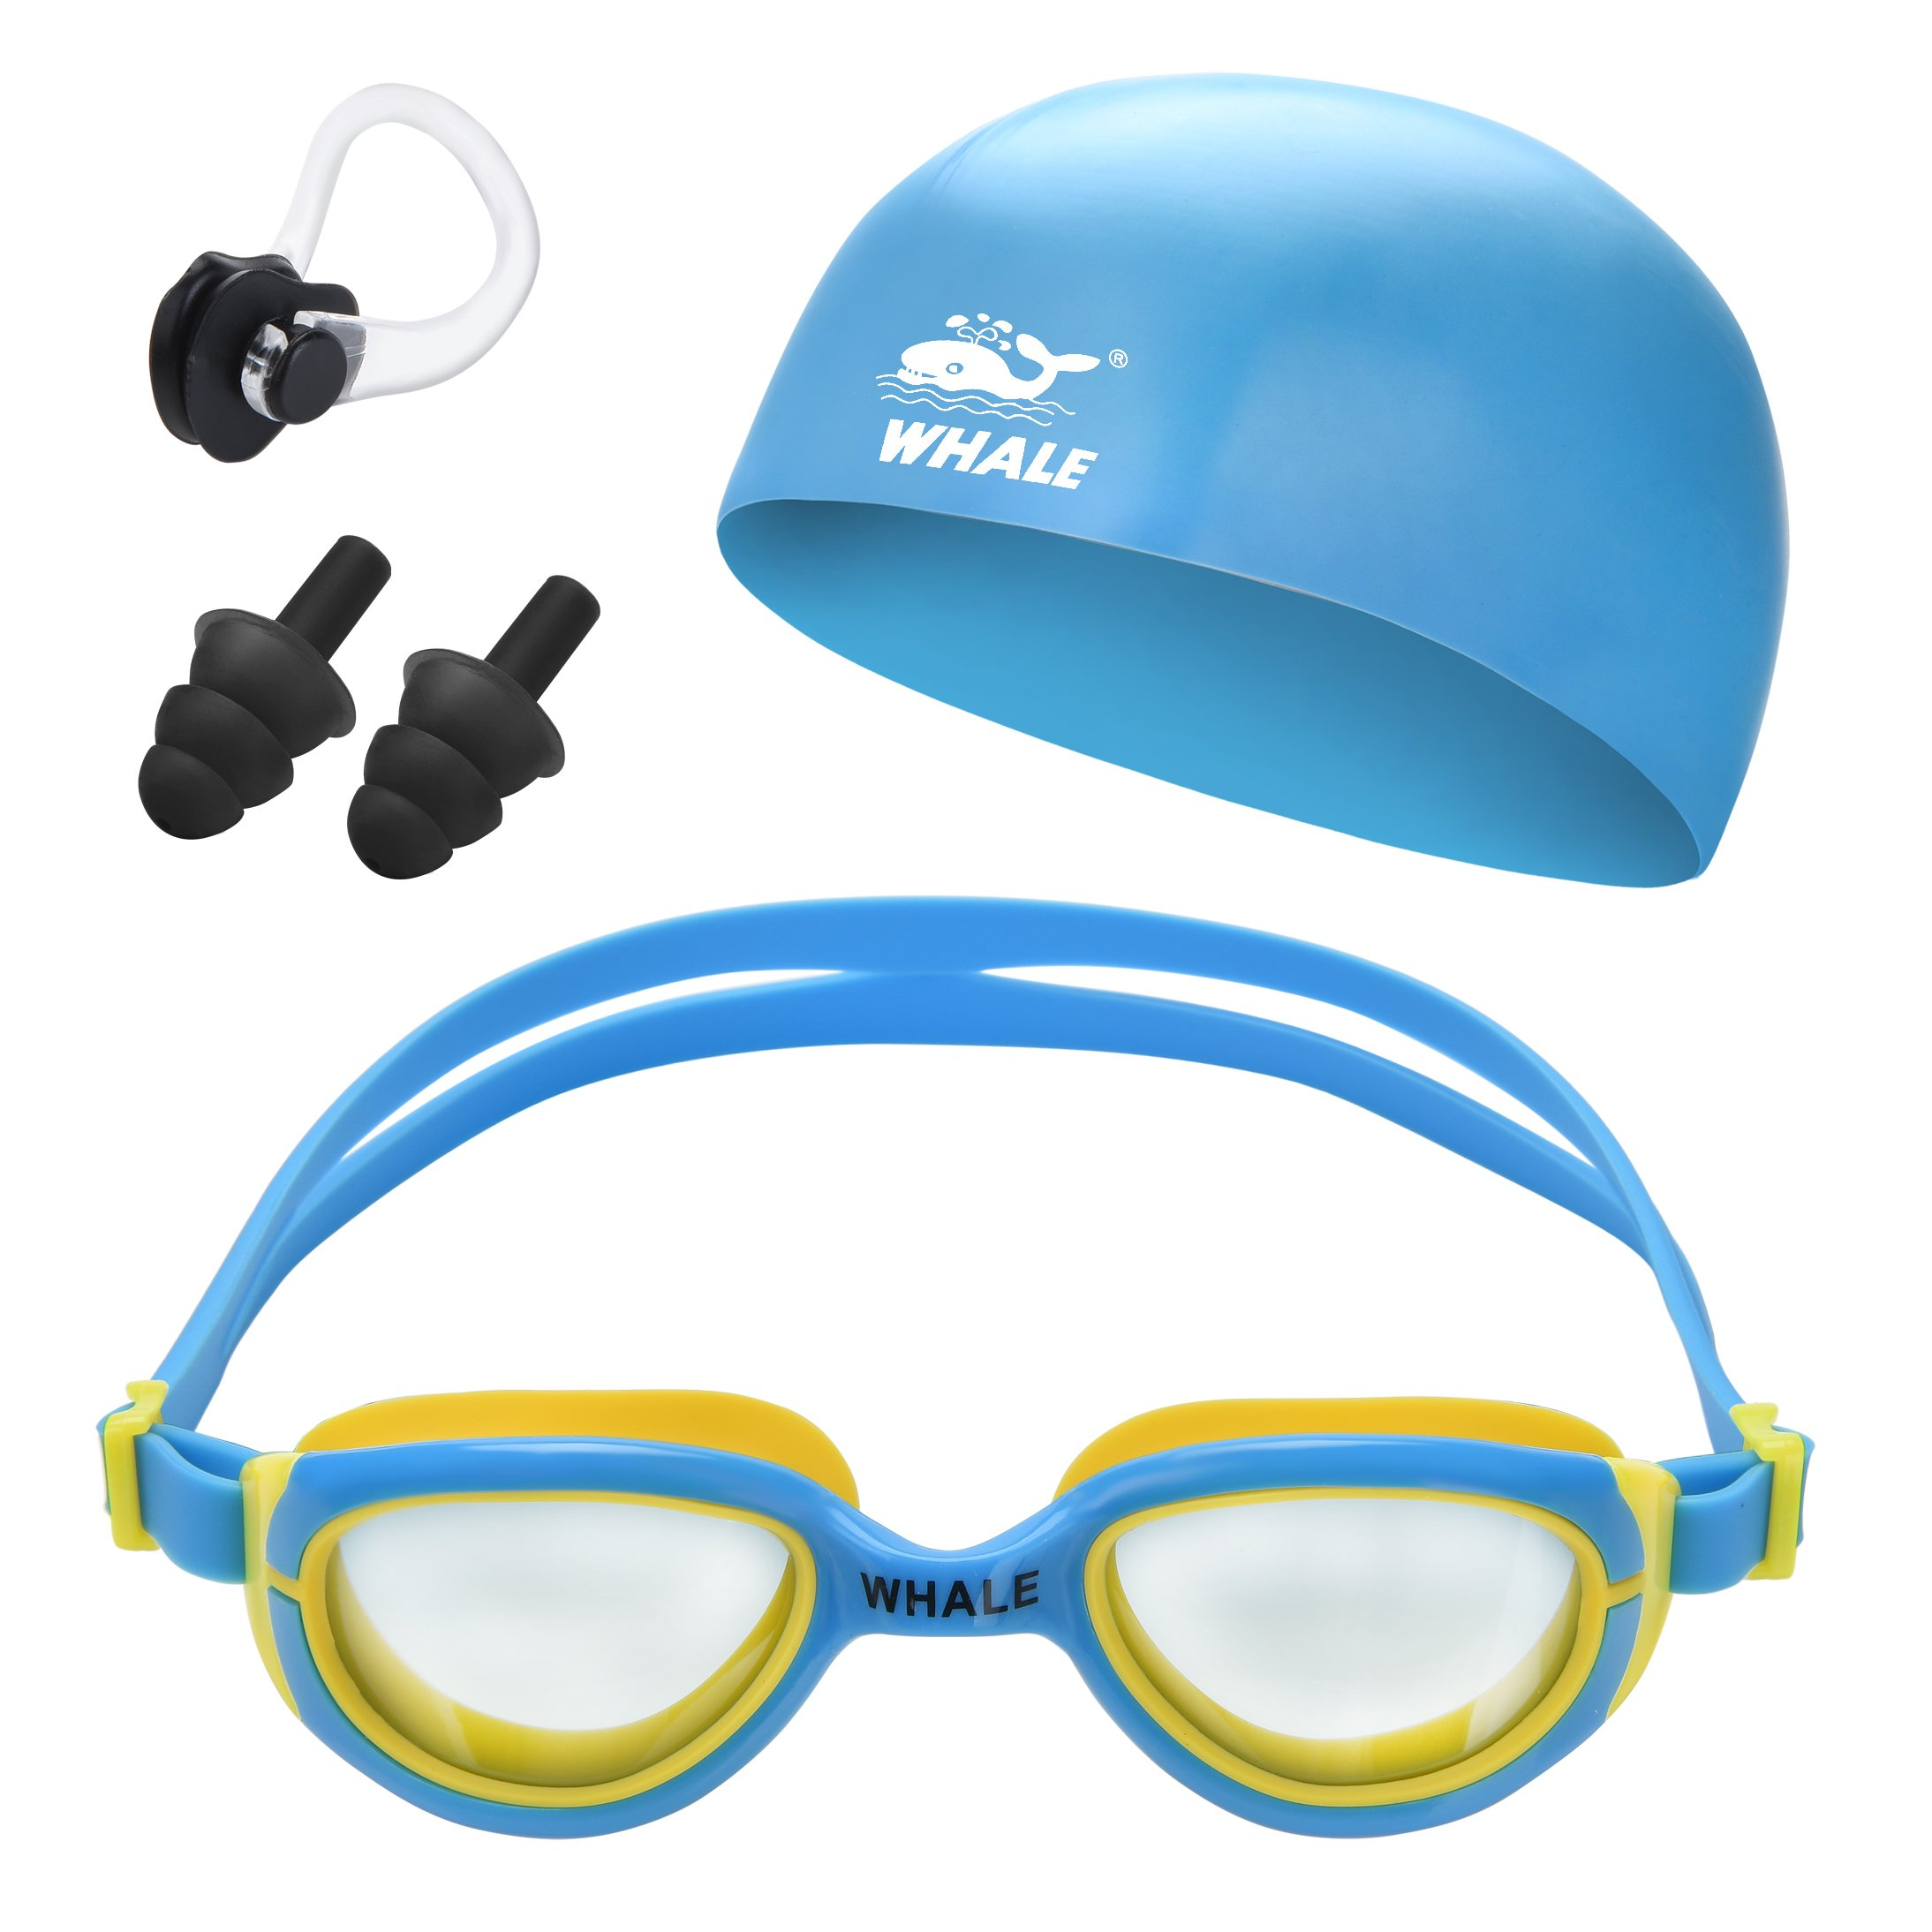 Swimming Cap for Kids Set with Swim Goggles Ear Plugs Nose Clips Training Laps Gear for Youth Teens Children Boys Girls